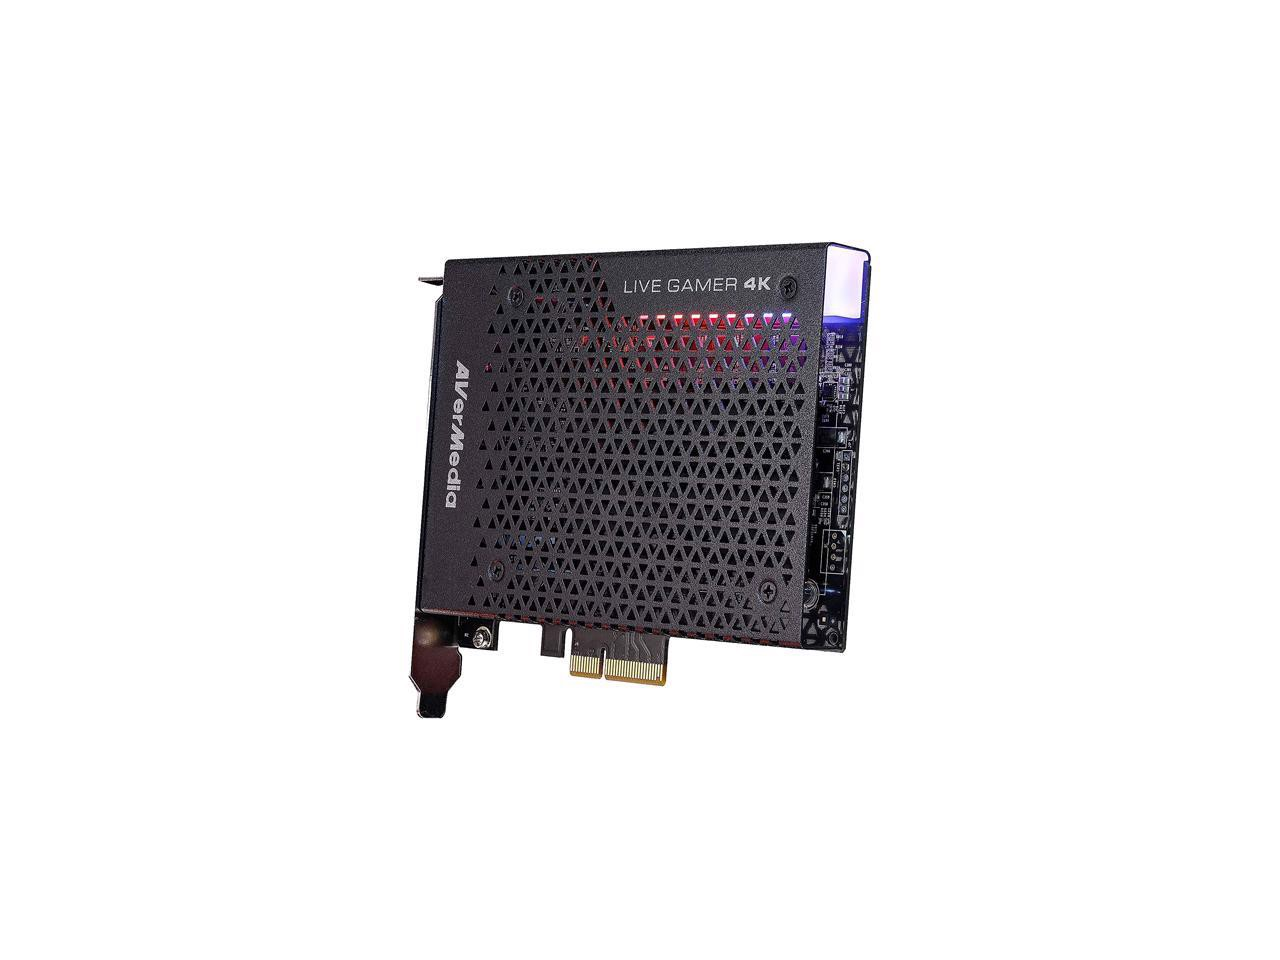 Thiết bị hổ trợ Stream -  Capture Card AVerMedia Live Gamer 4K GC573